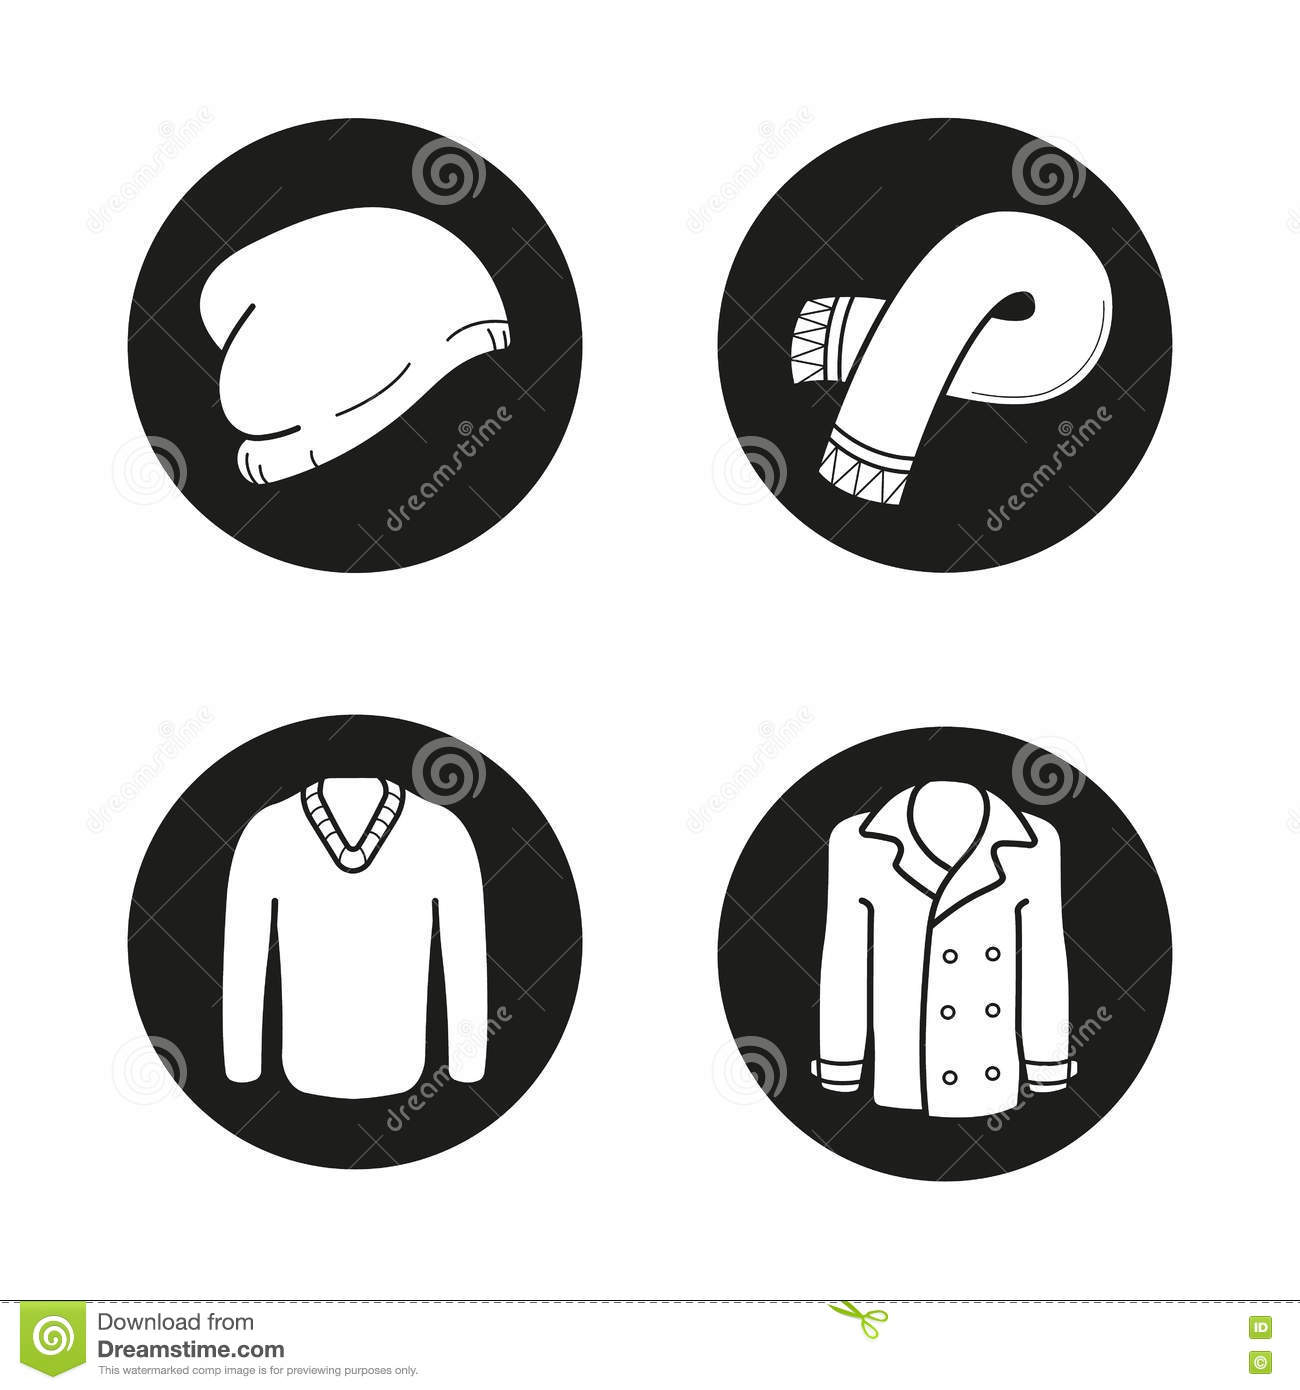 Winter clothes icons set simple style vector illustration 78917420 - Autumn plowing time all set for winter ...